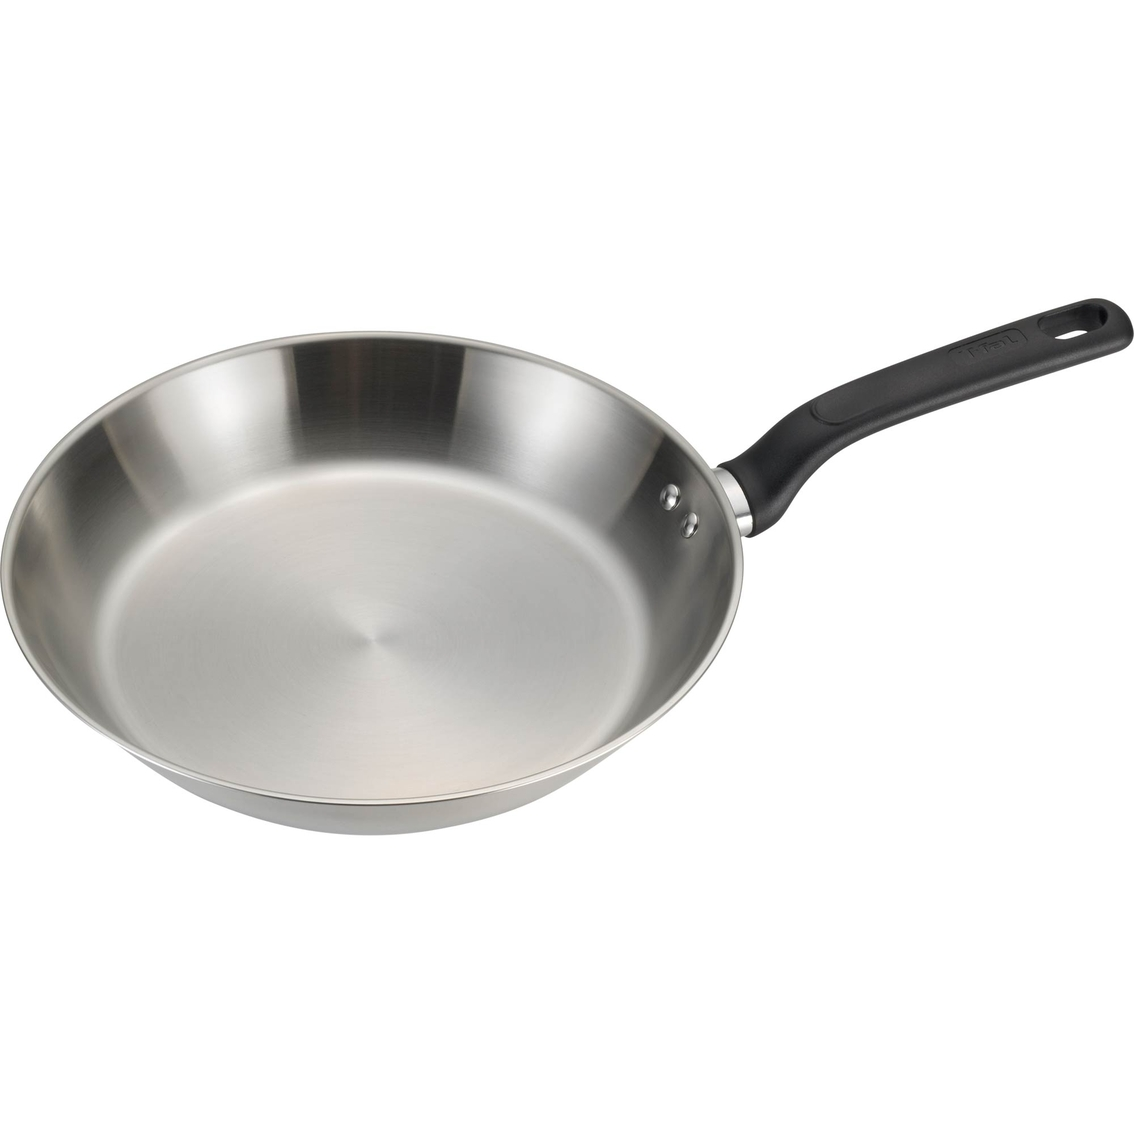 t fal excite stainless steel 10 in fry pan fry pans skillets home appliances shop the. Black Bedroom Furniture Sets. Home Design Ideas